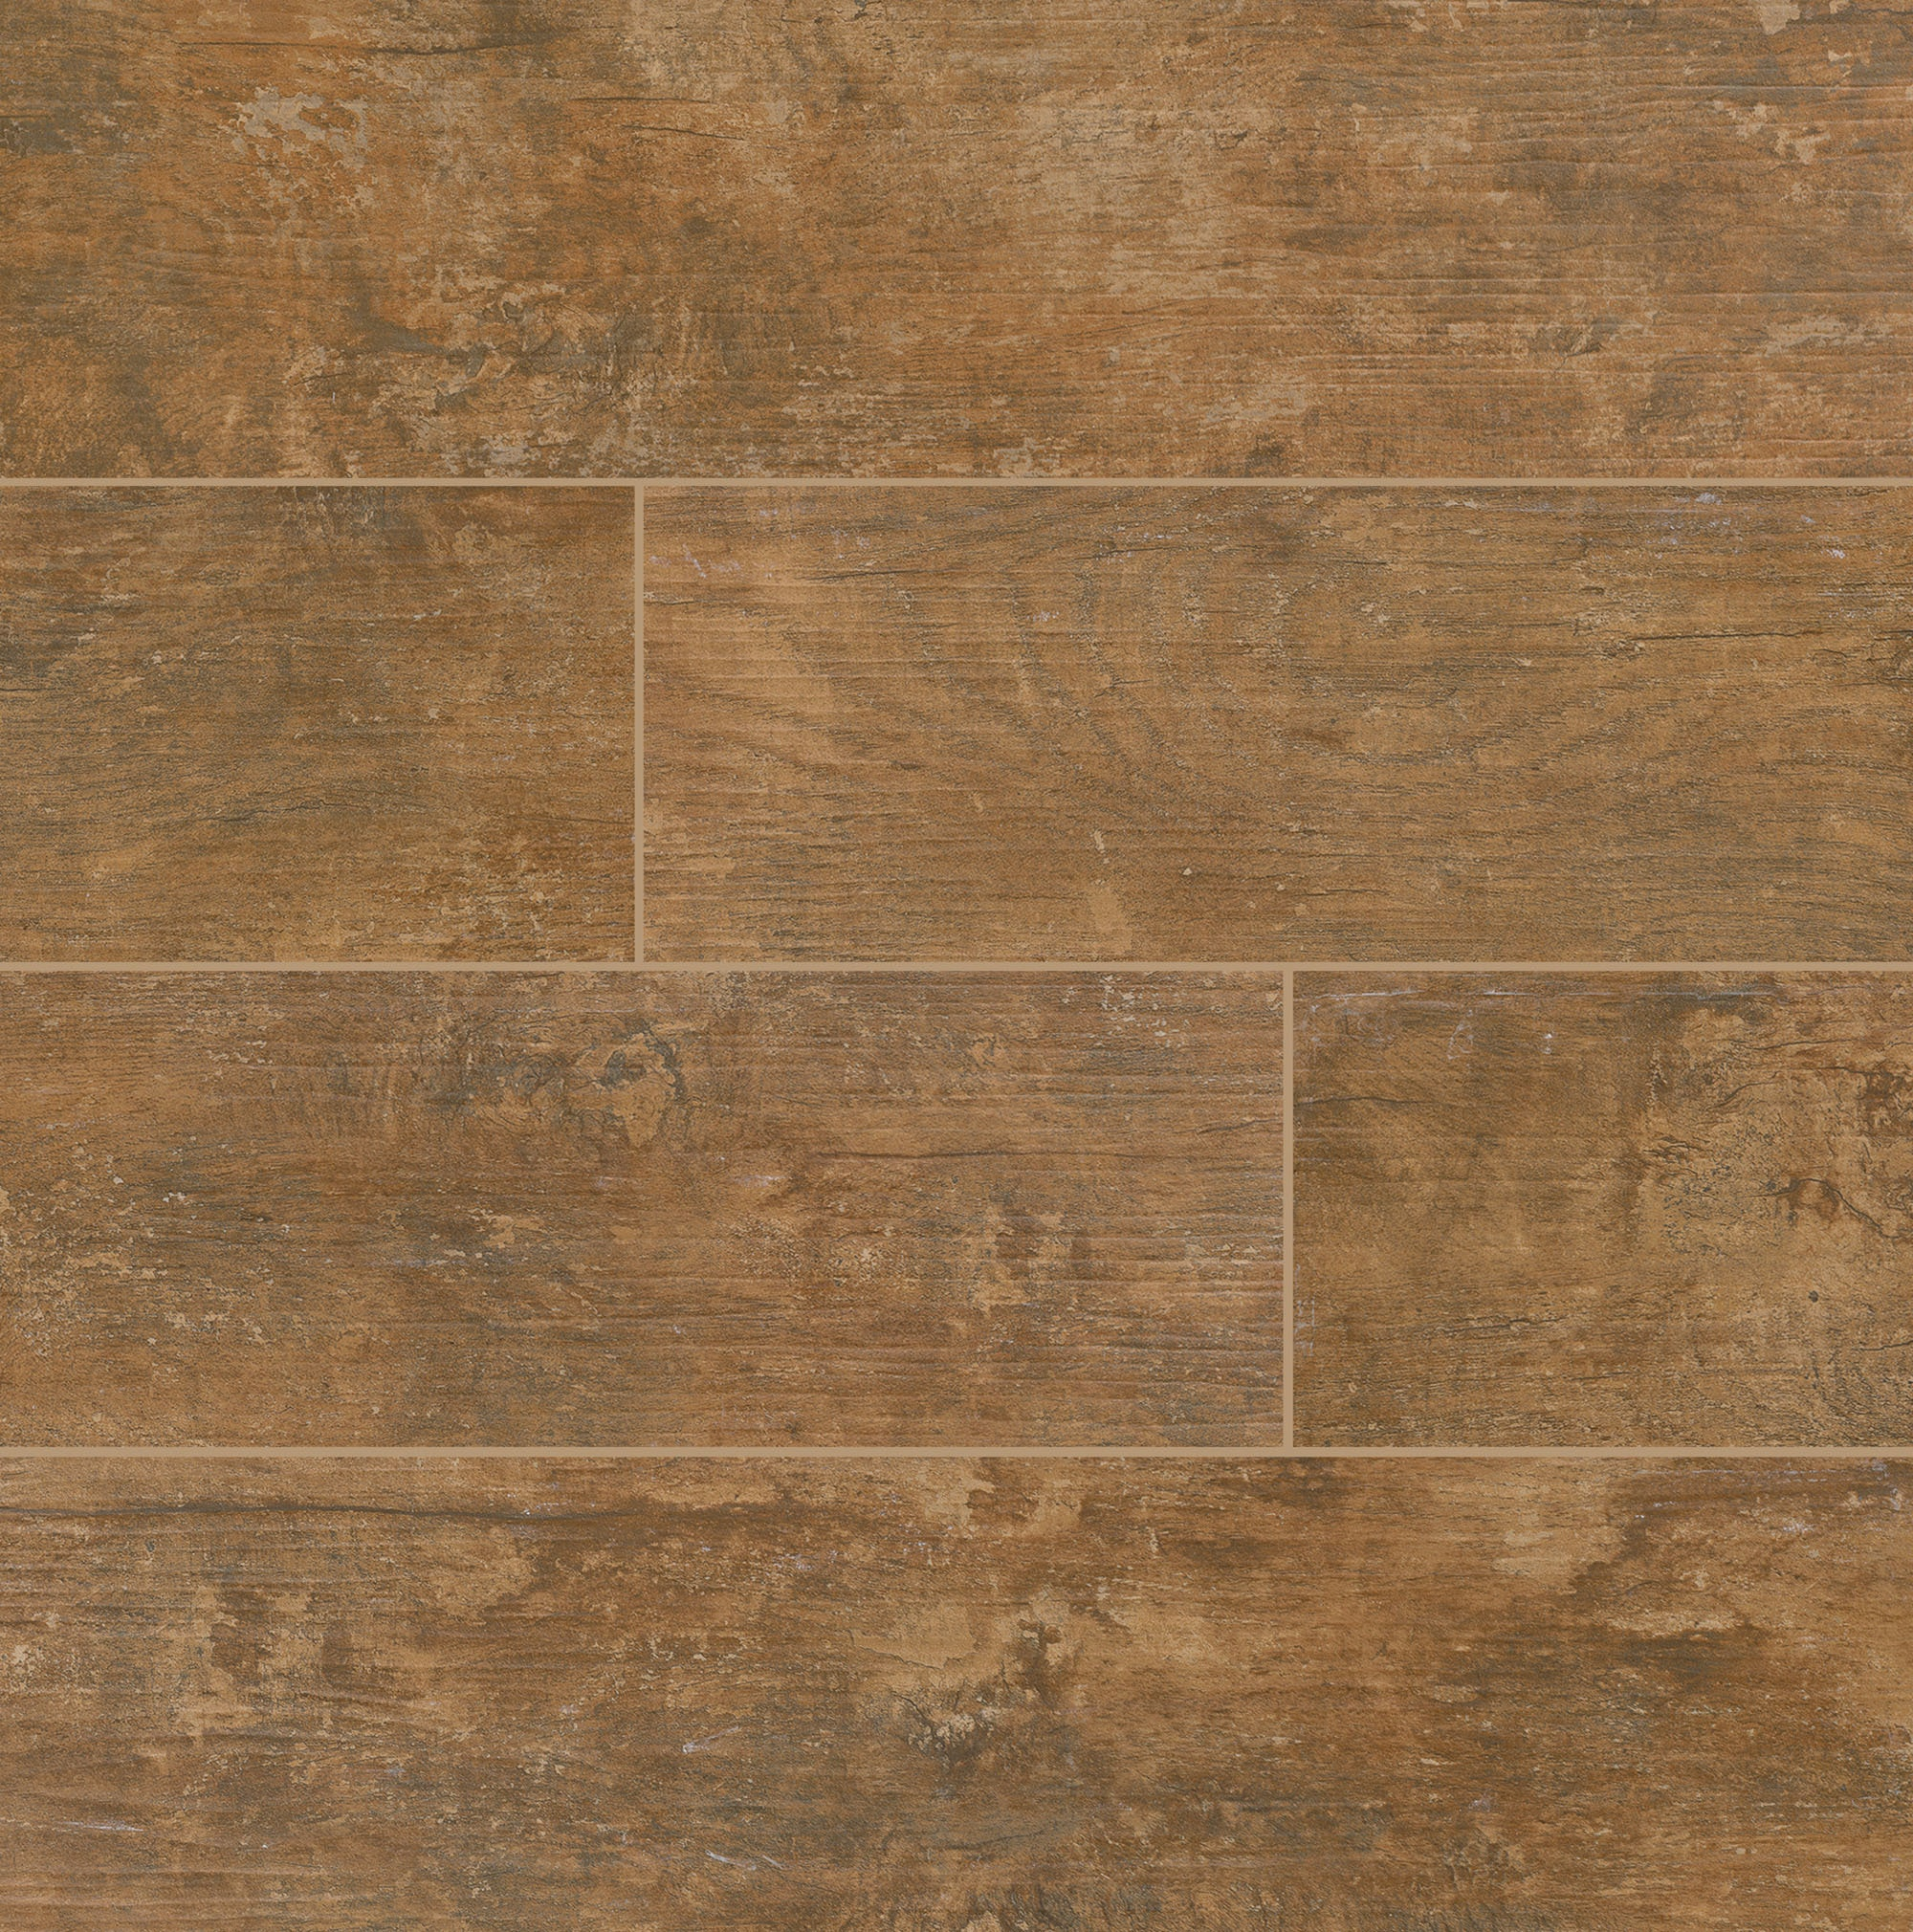 Ms International Porcelain Tile Eco Wood Series Tungsten